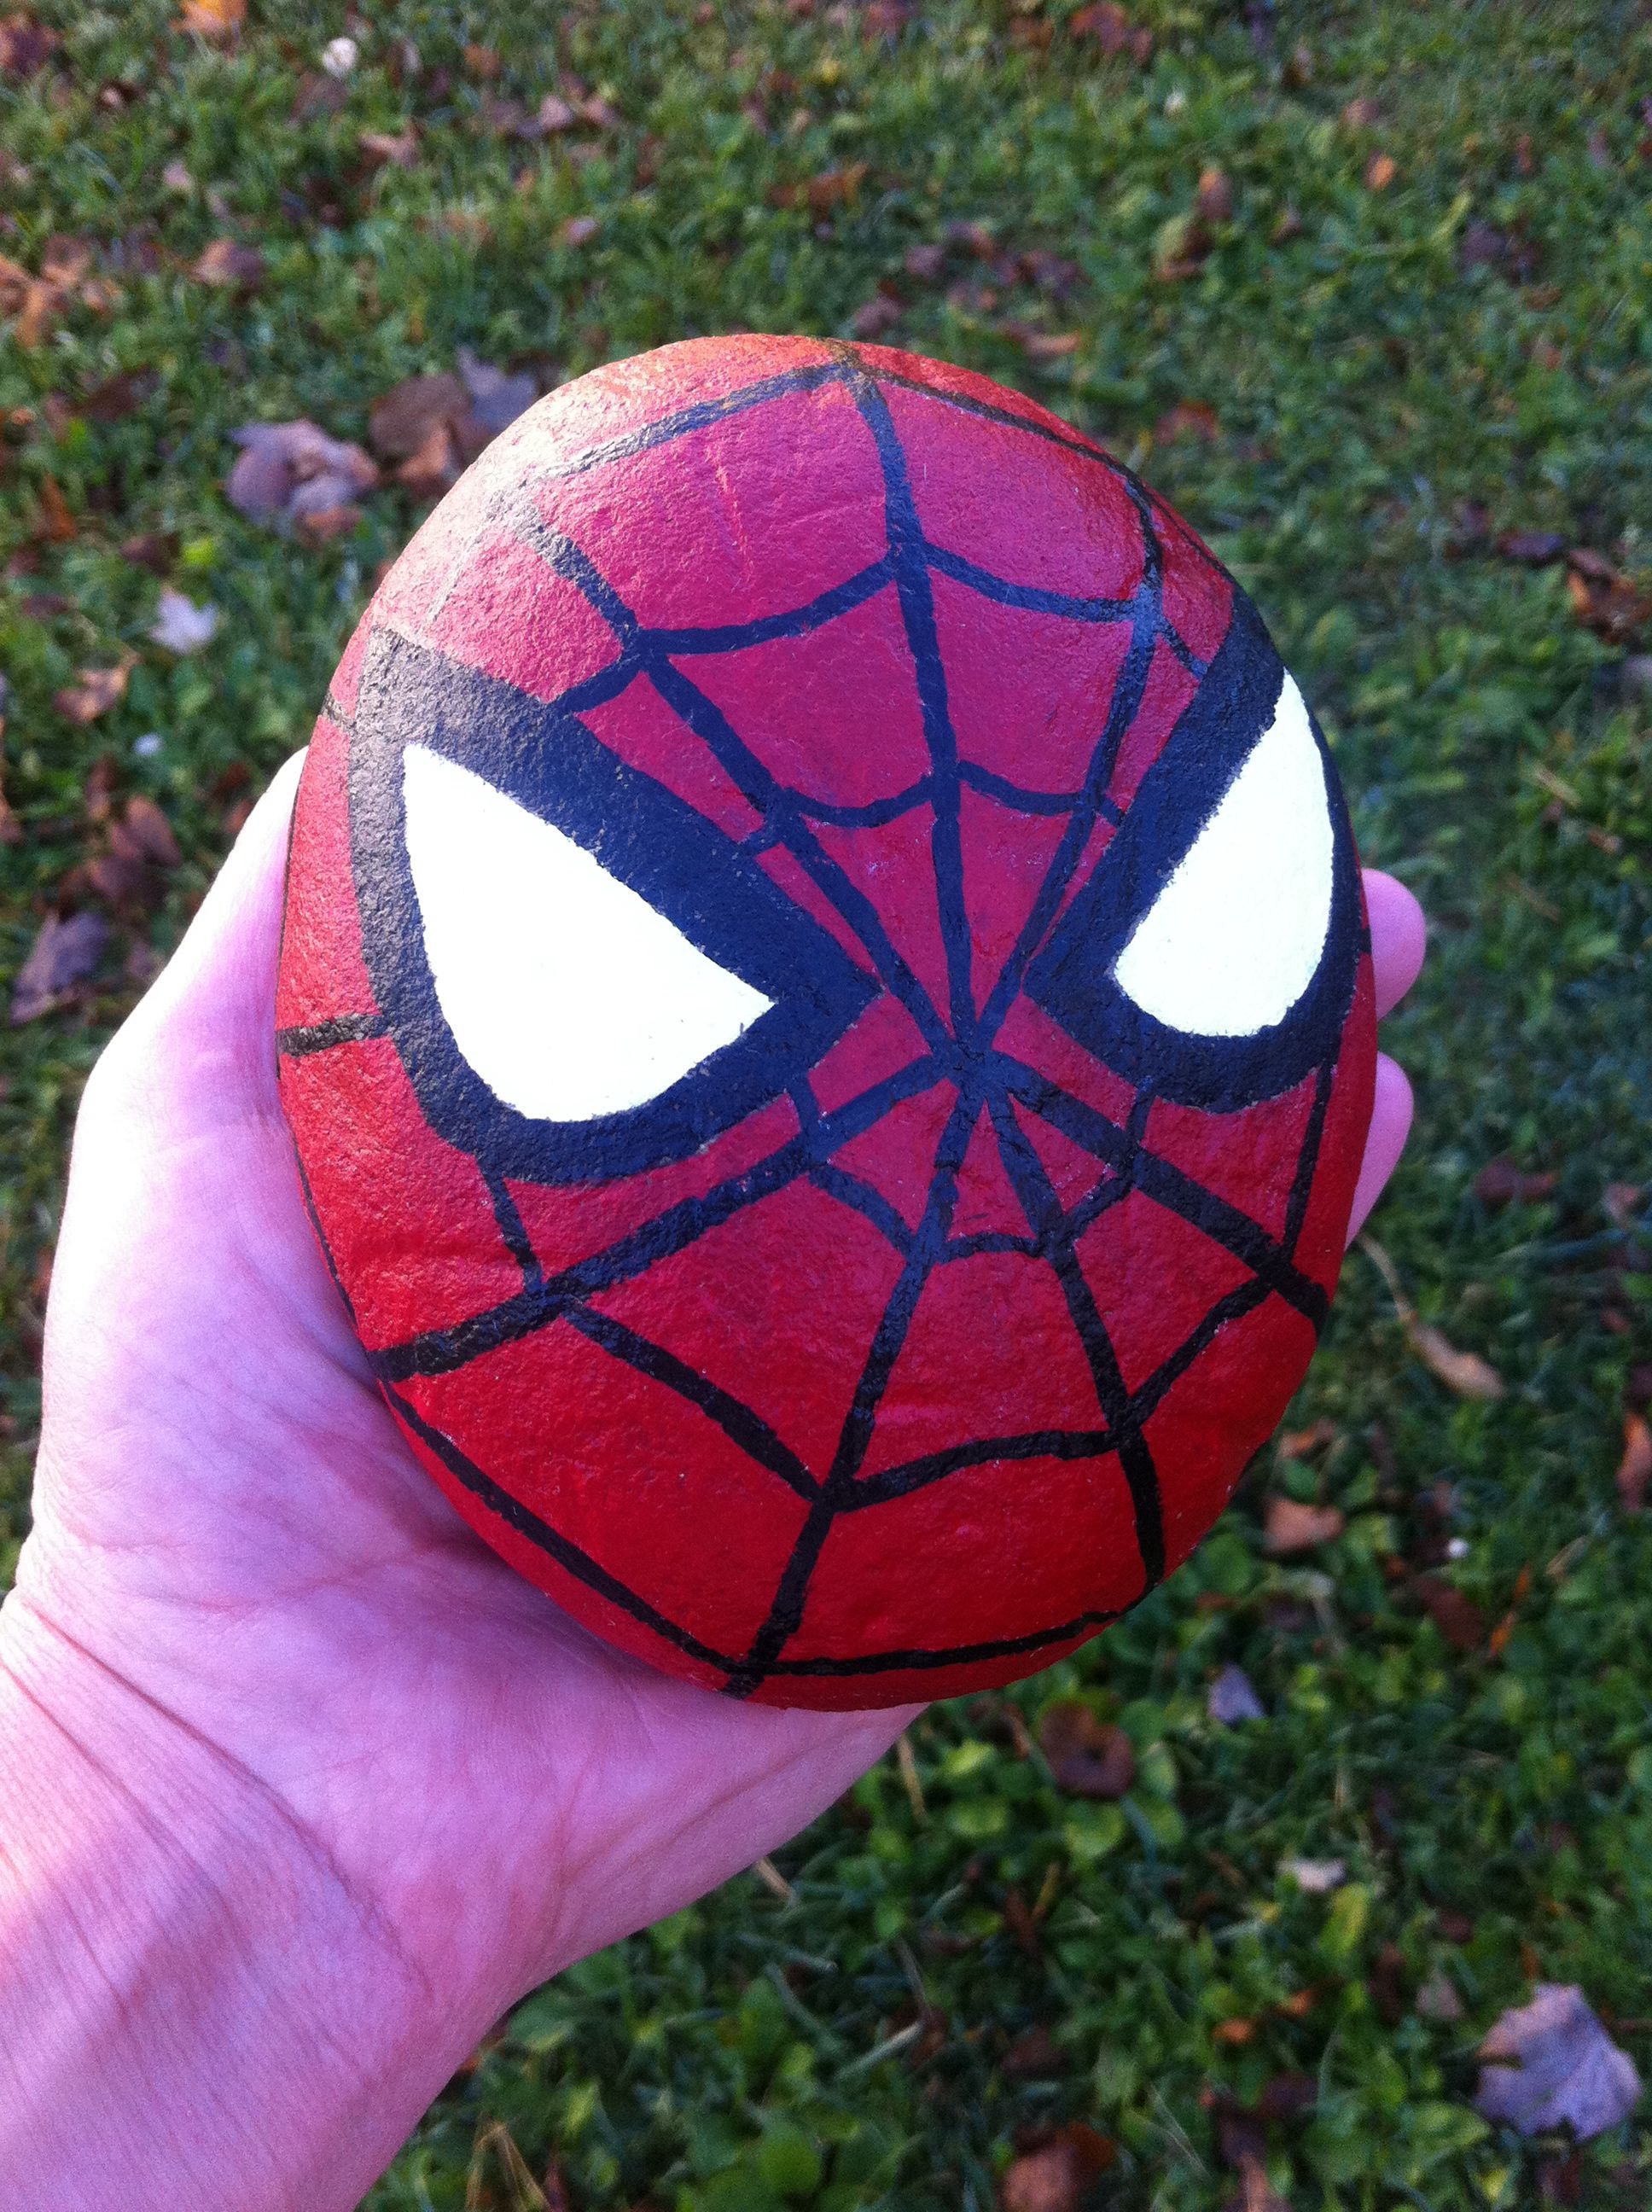 Spider Man Painted Rock Rock Painting Designs Painted Rocks